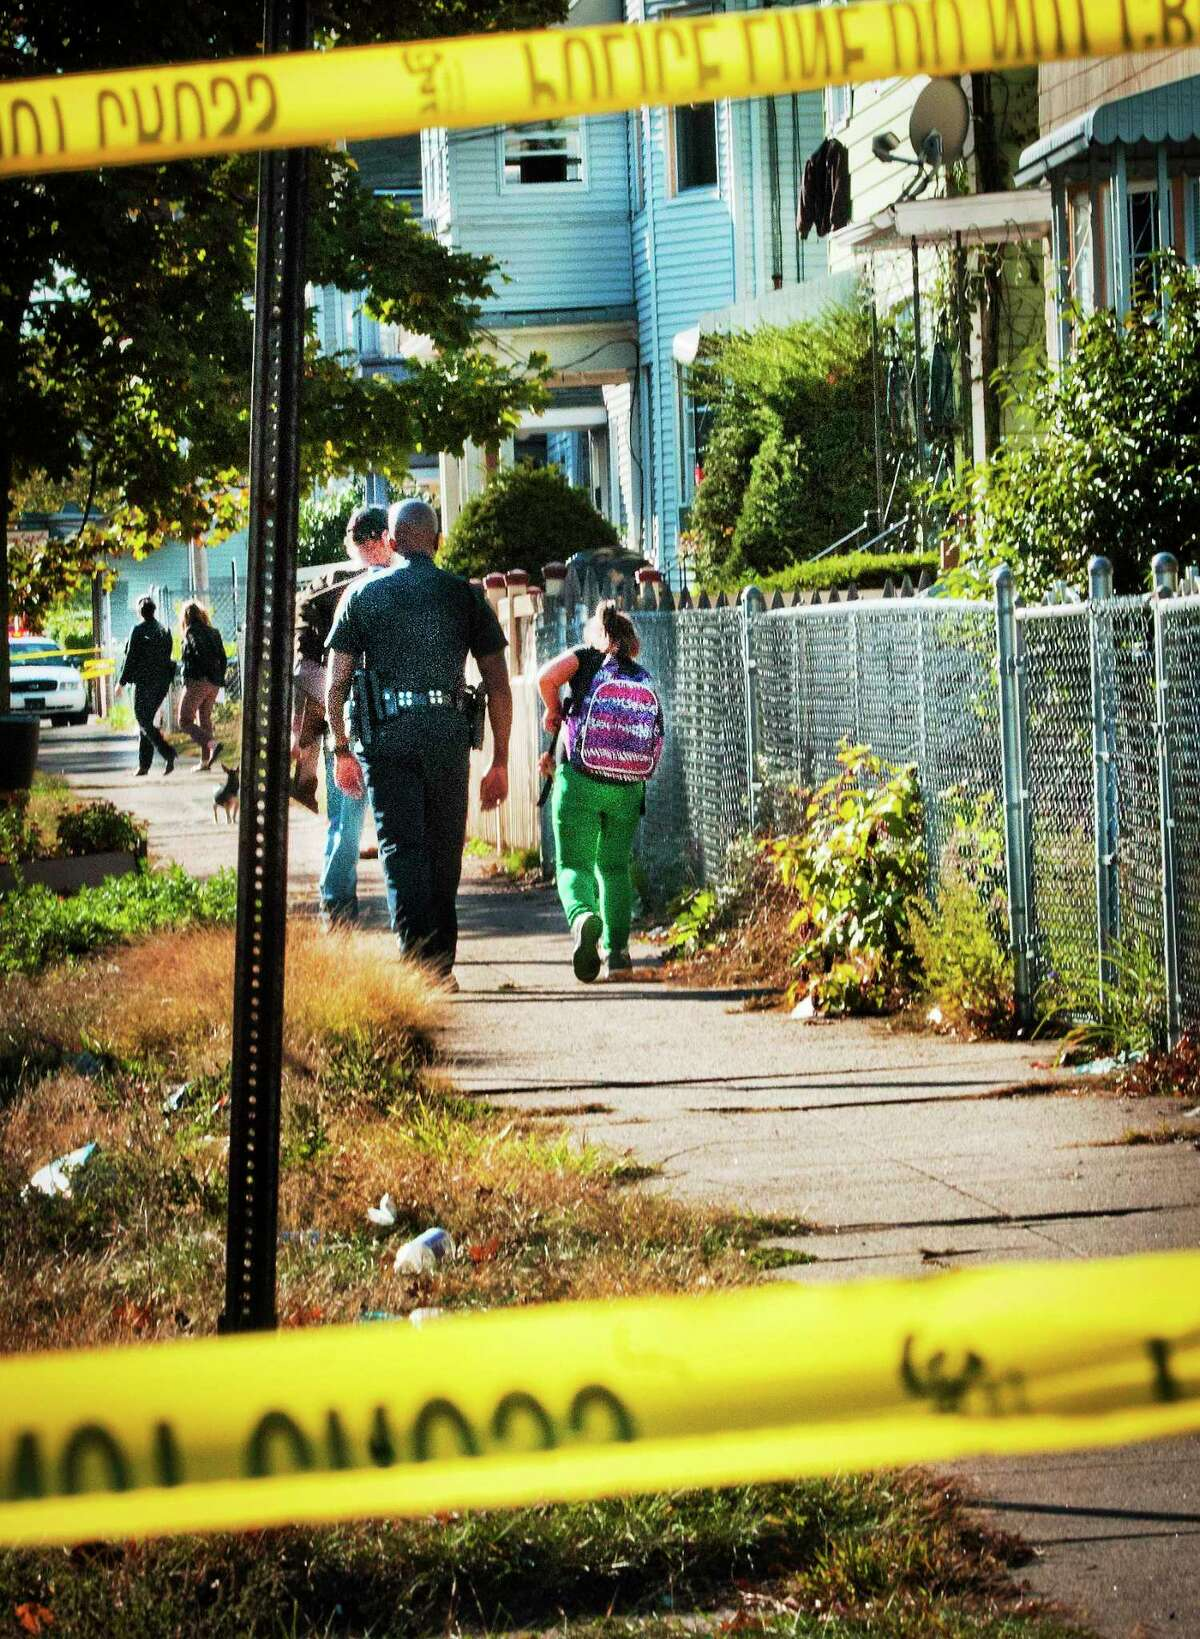 A police officer escorts a student home from school down Lombard Street in New Haven in October 2013. Police roped off the area due to a shooting.